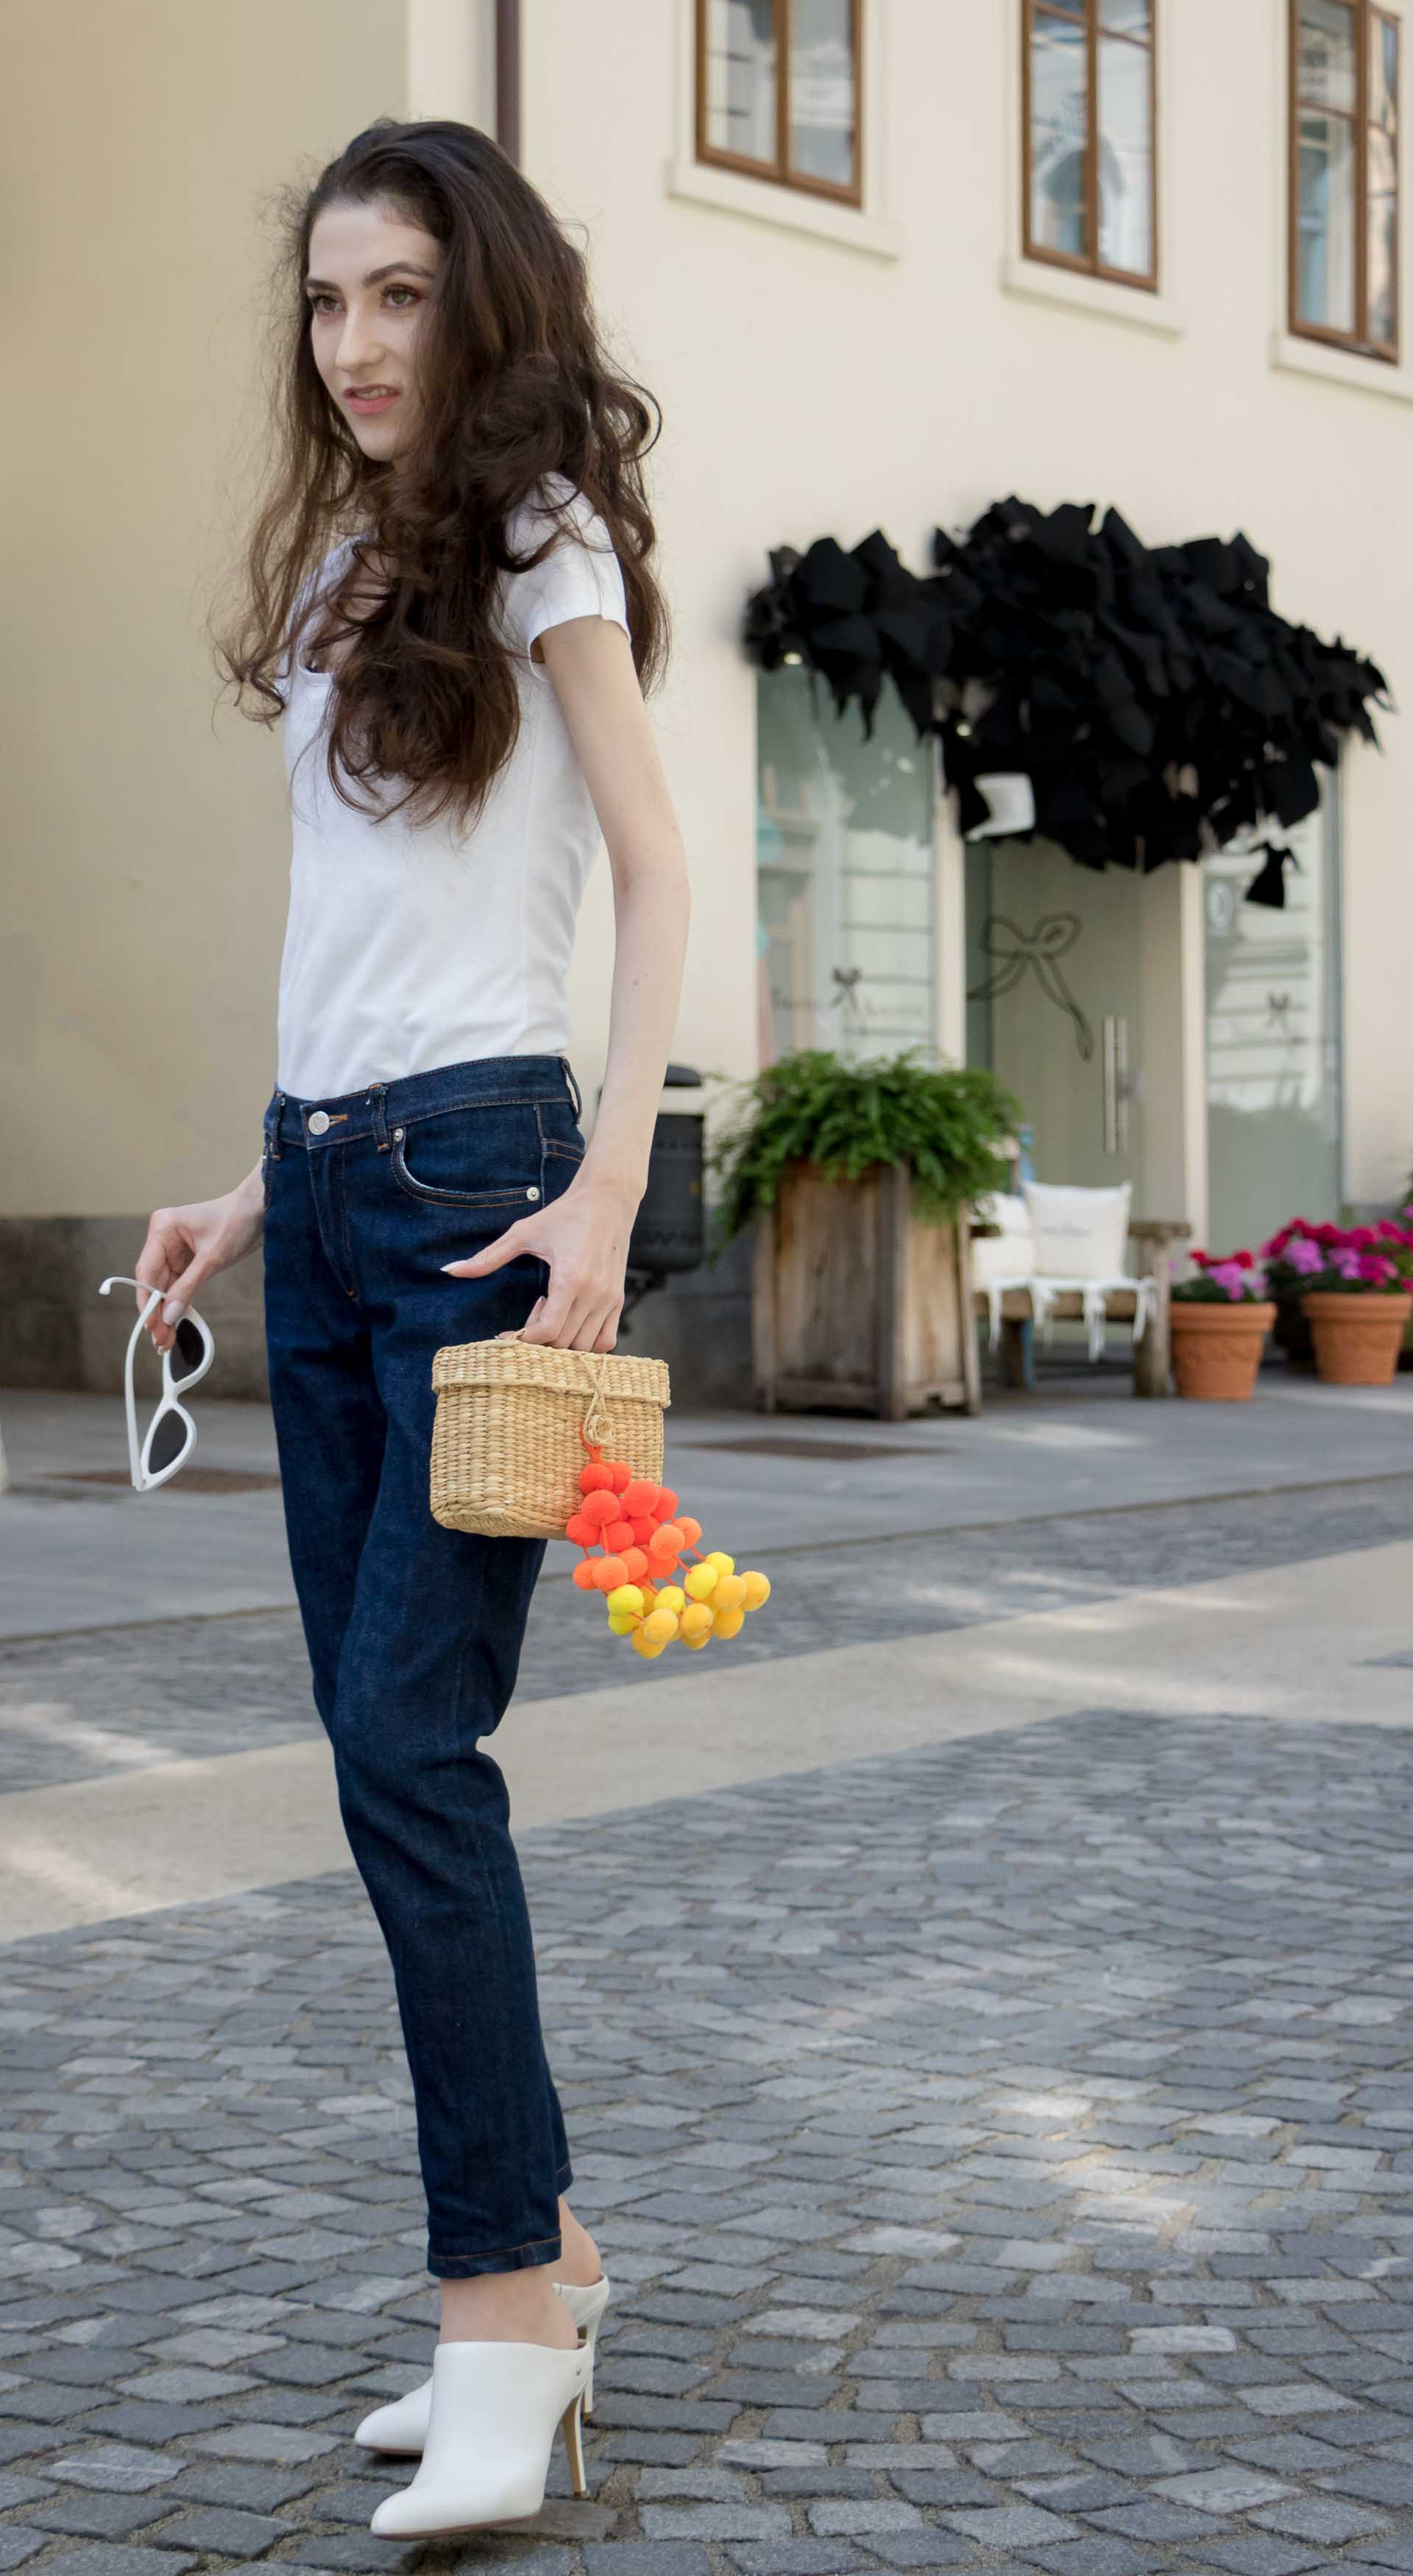 Veronika Lipar Fashion Editor of Brunette from Wall Street wearing basic summer outfit dark blue tapered jeans from A.P.C., H&M white T-shirt, Nannacay basket bag, white mules and Adam Selman x Le Specs white cat eye Lolita sunglasses on the street